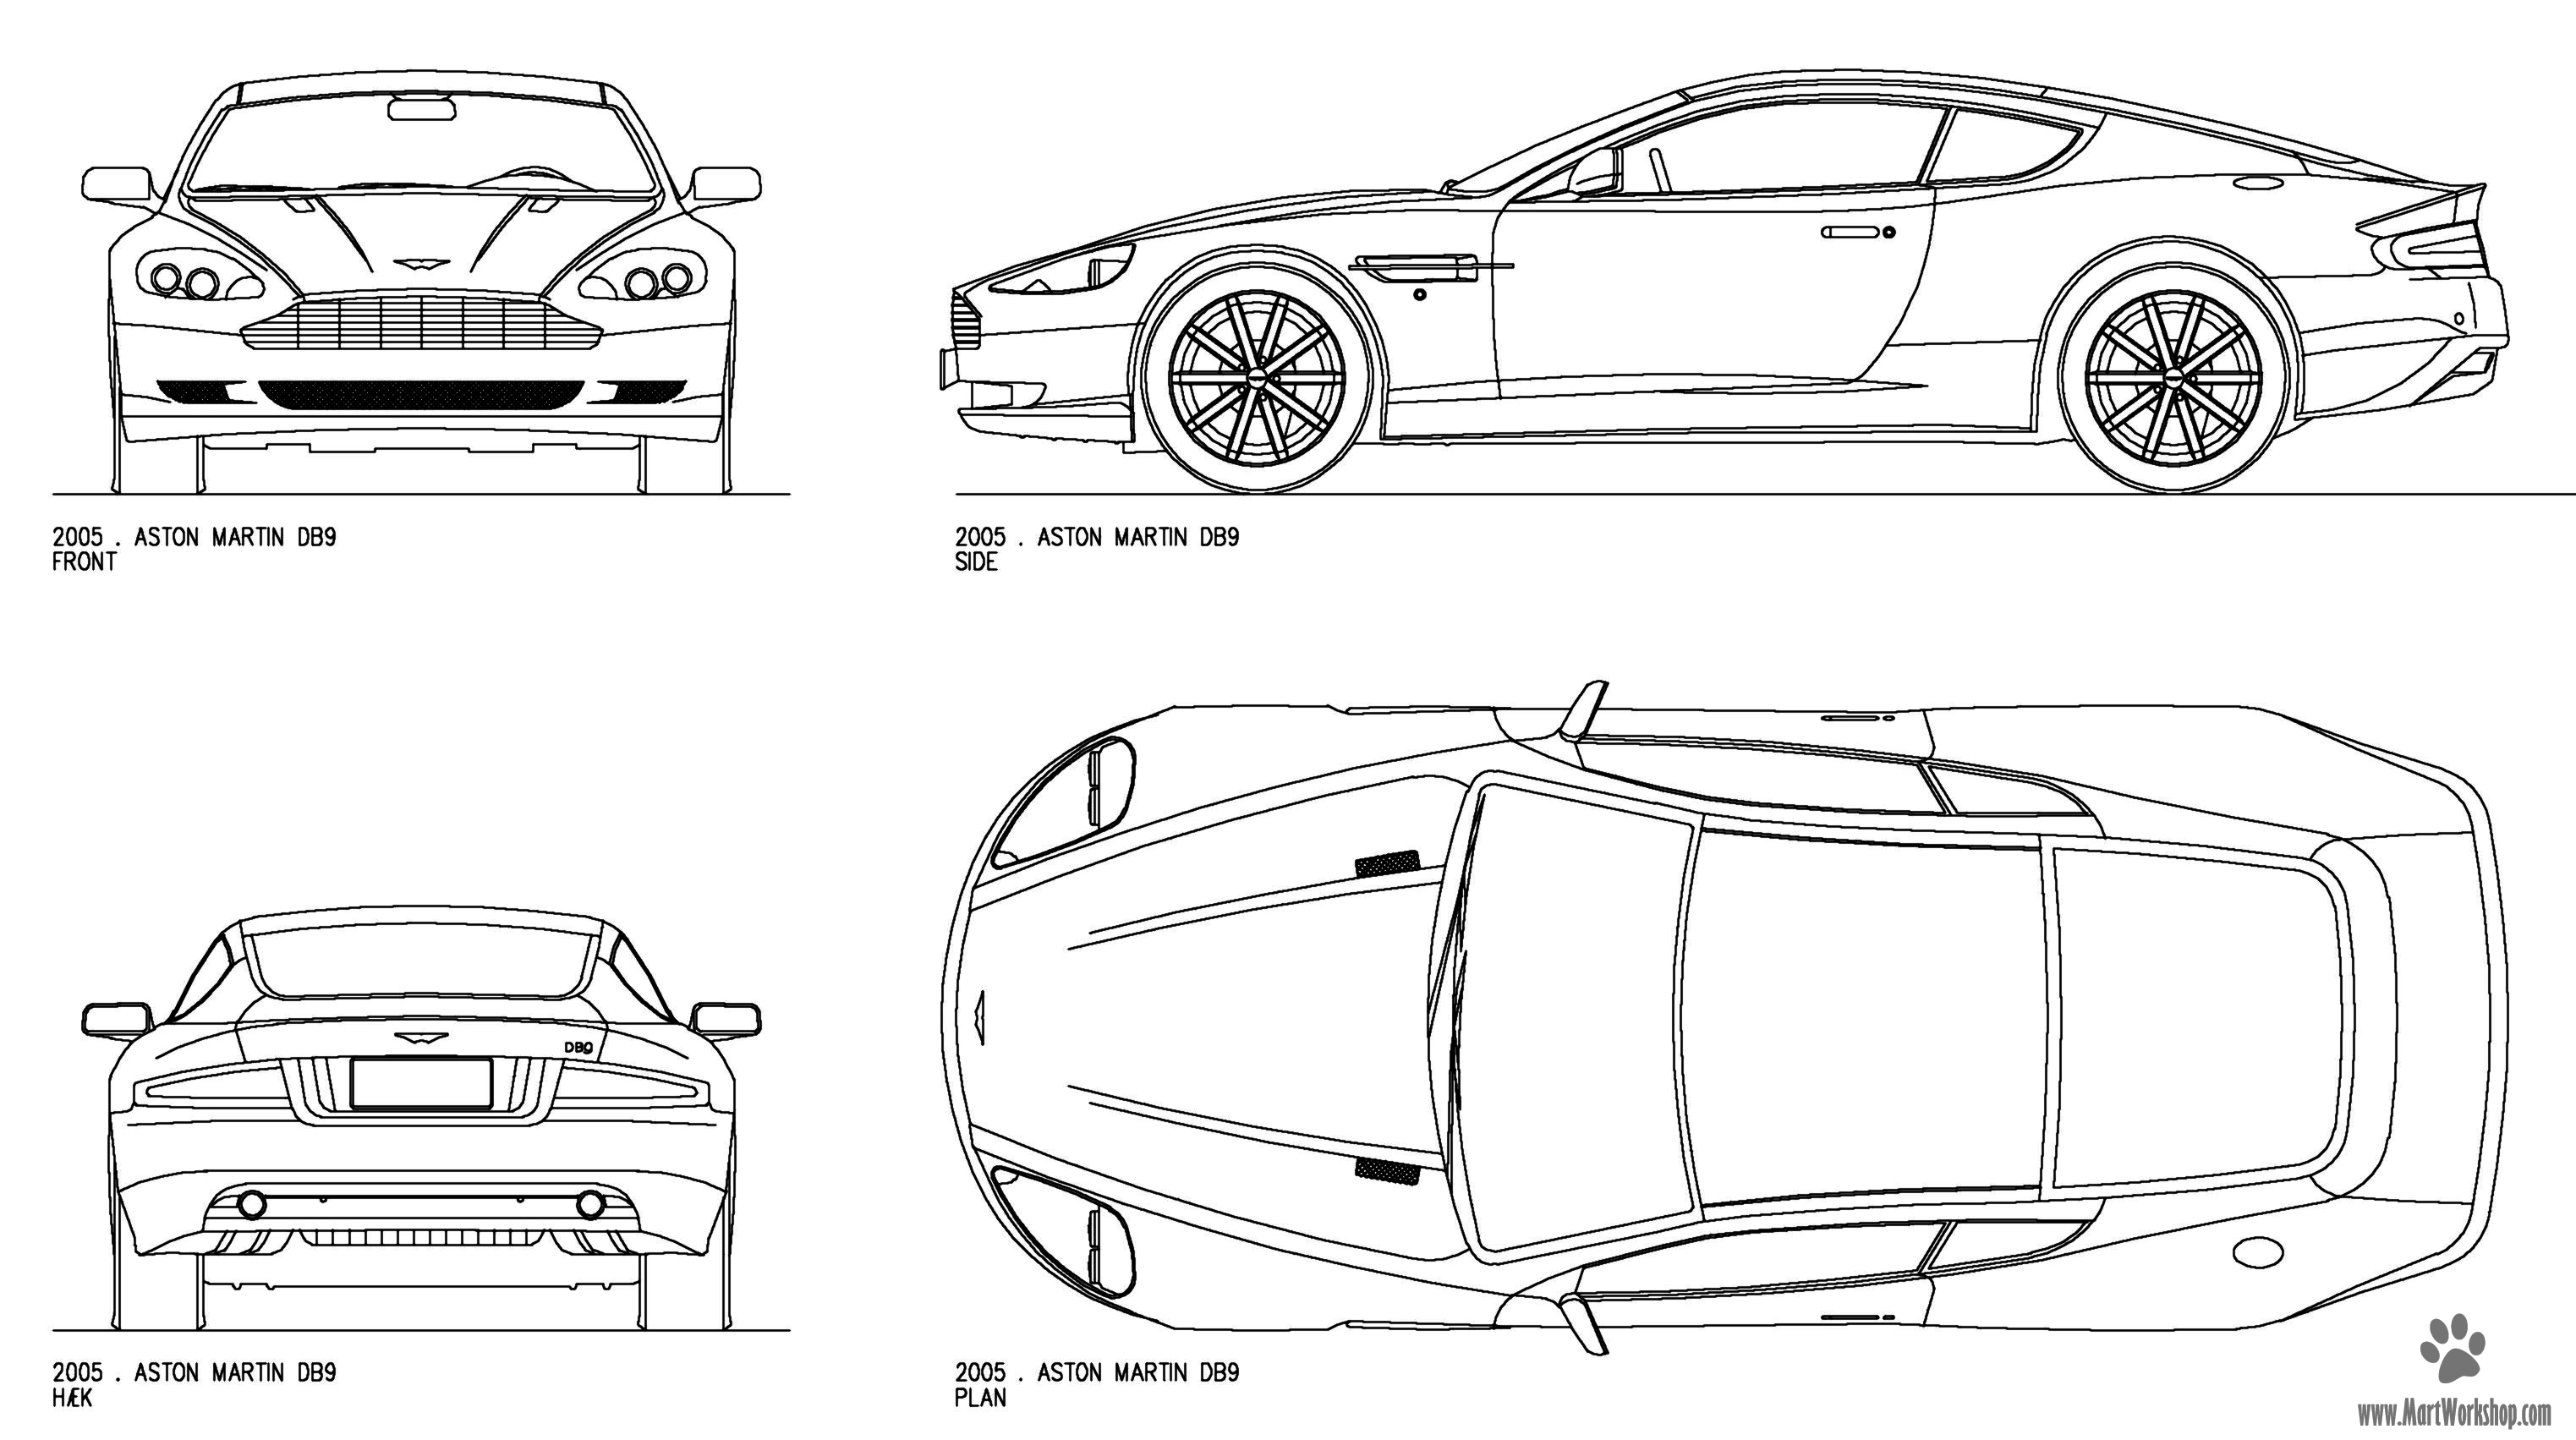 28 Corvette Coloring Pages Images | FREE COLORING PAGES - Part 2